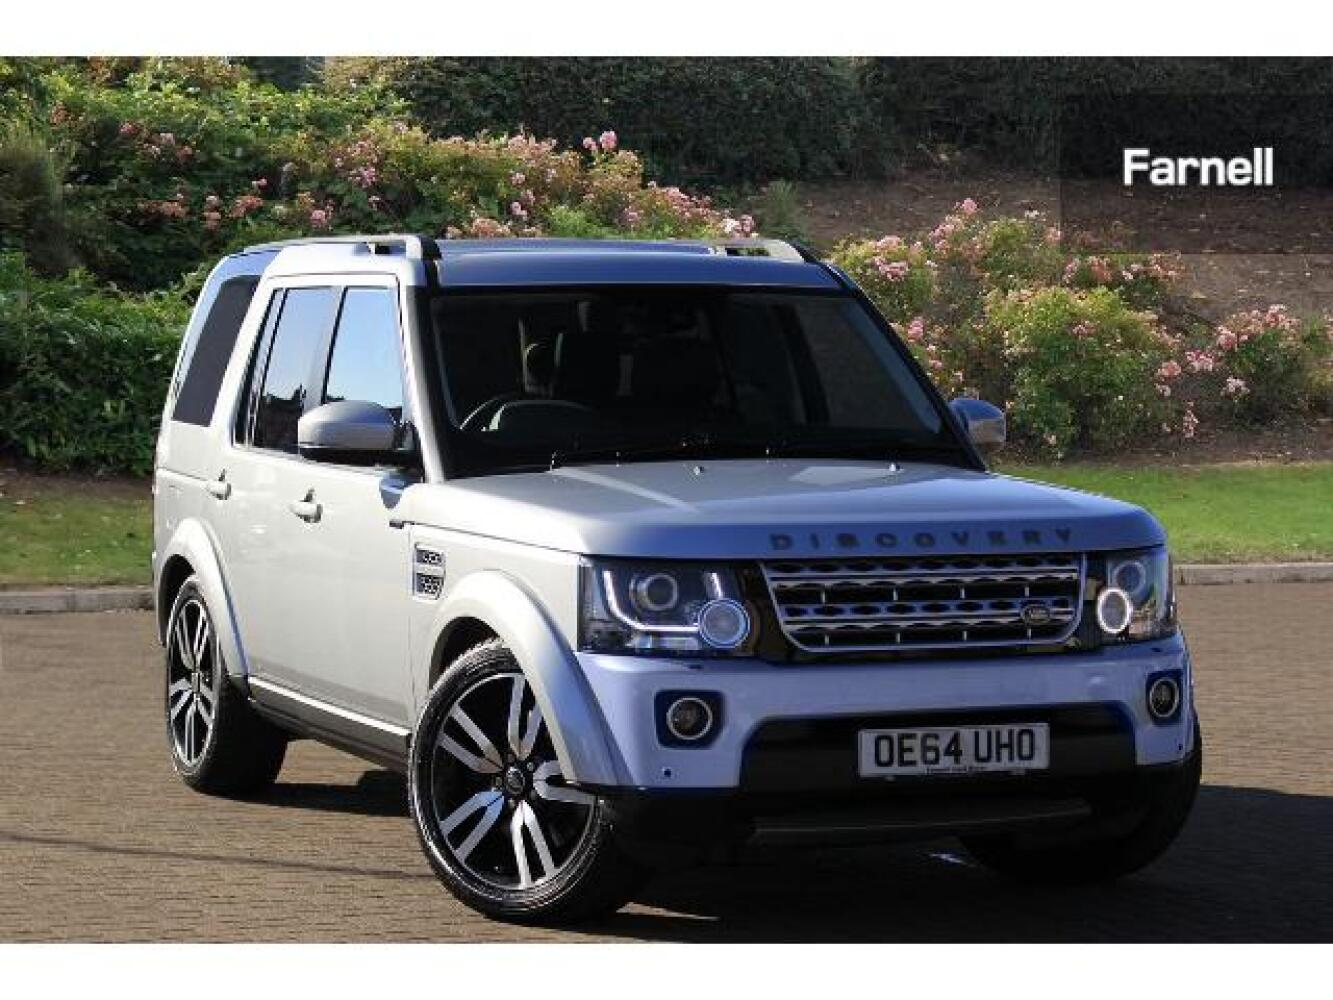 used land rover discovery 3 0 sdv6 hse luxury 5dr auto diesel station wagon for sale farnell. Black Bedroom Furniture Sets. Home Design Ideas